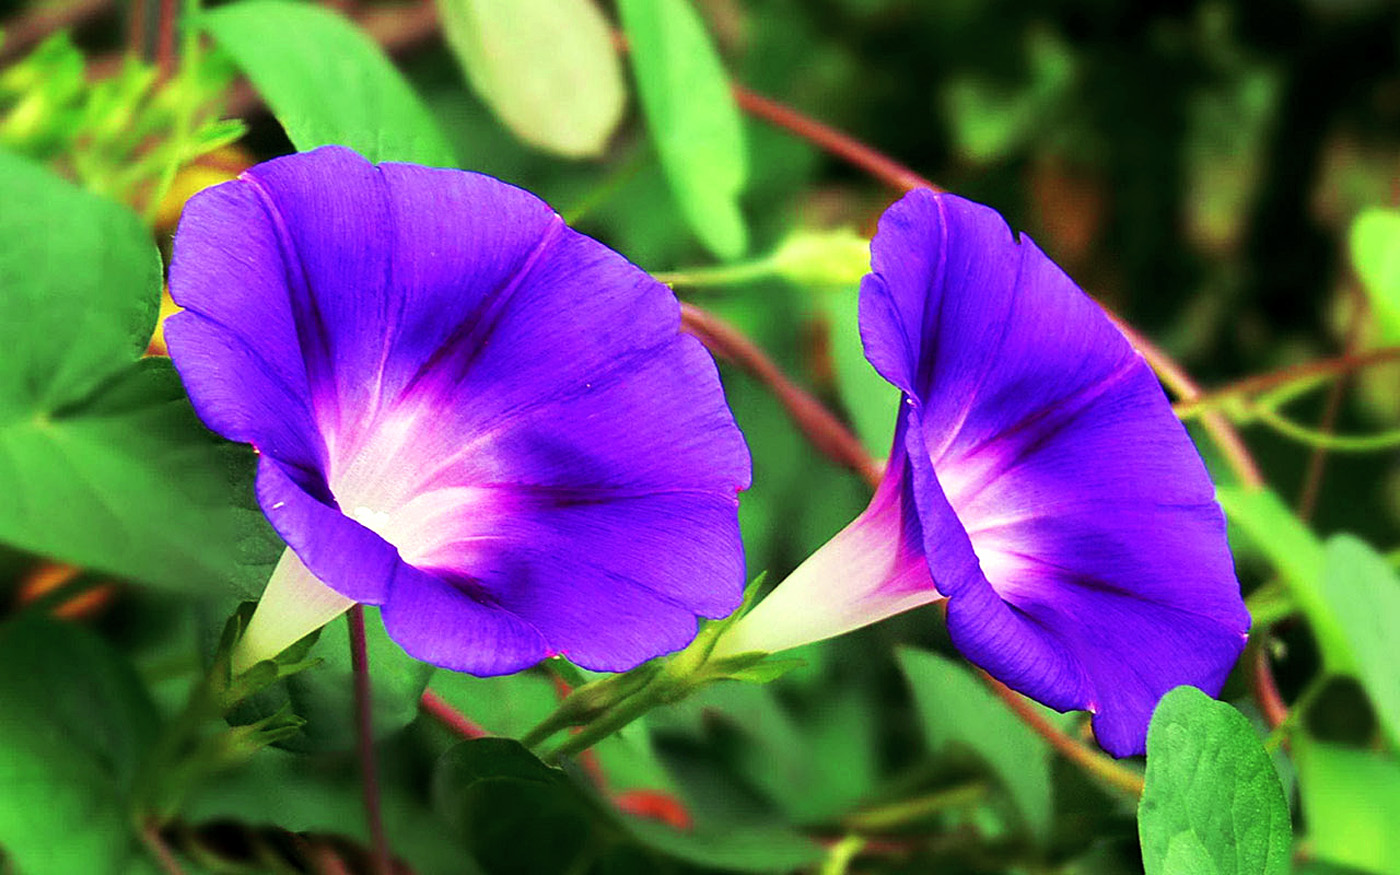 How to grow Morning glory | Growing morning glory in a container